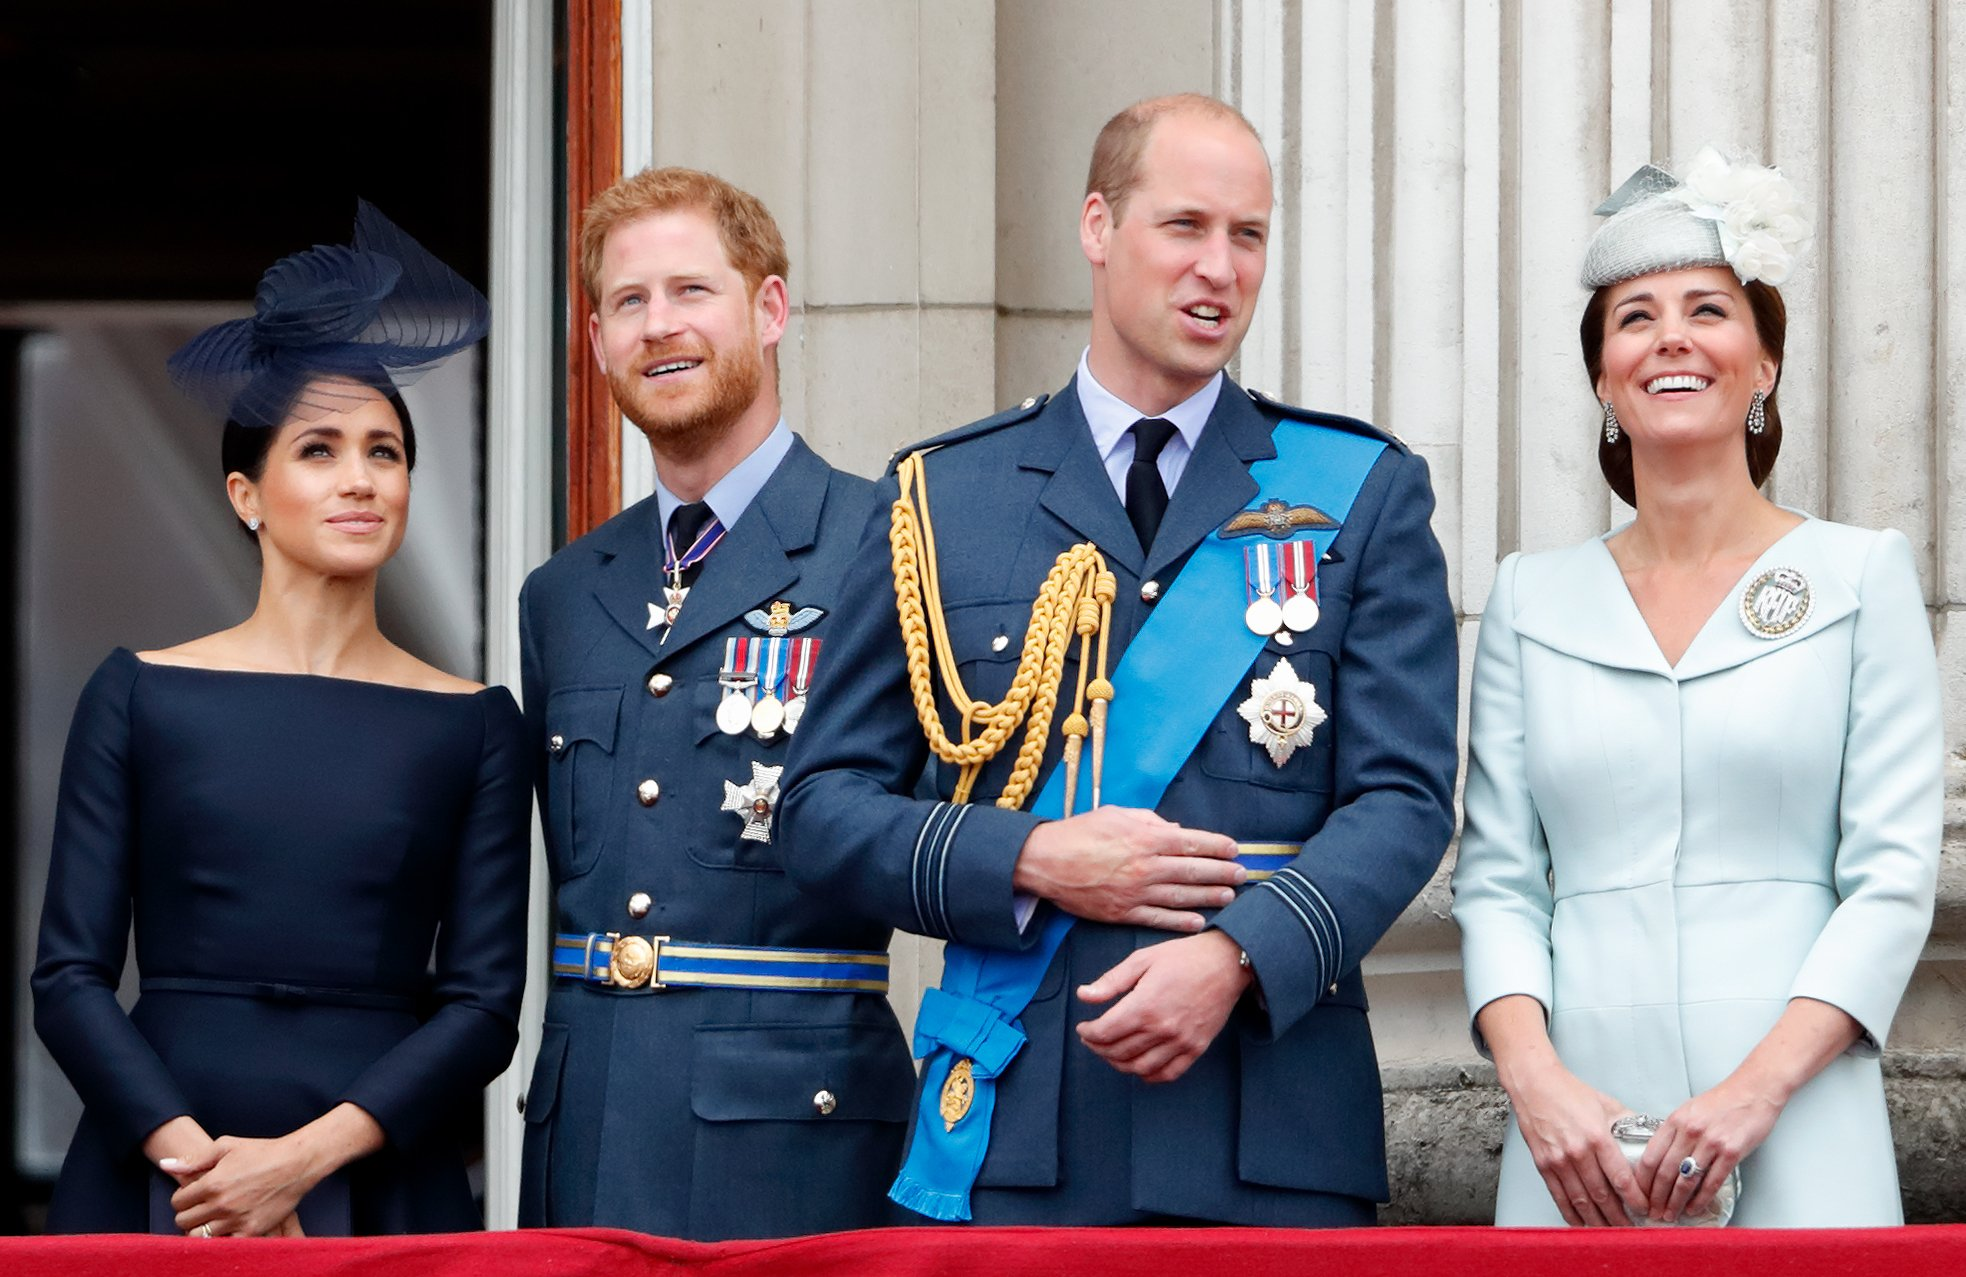 Meghan Markl, Prince Harry, Prince William and Kate Middleton smile while looking up from the balcony at the Buckingham Palace | Photo: Getty Images